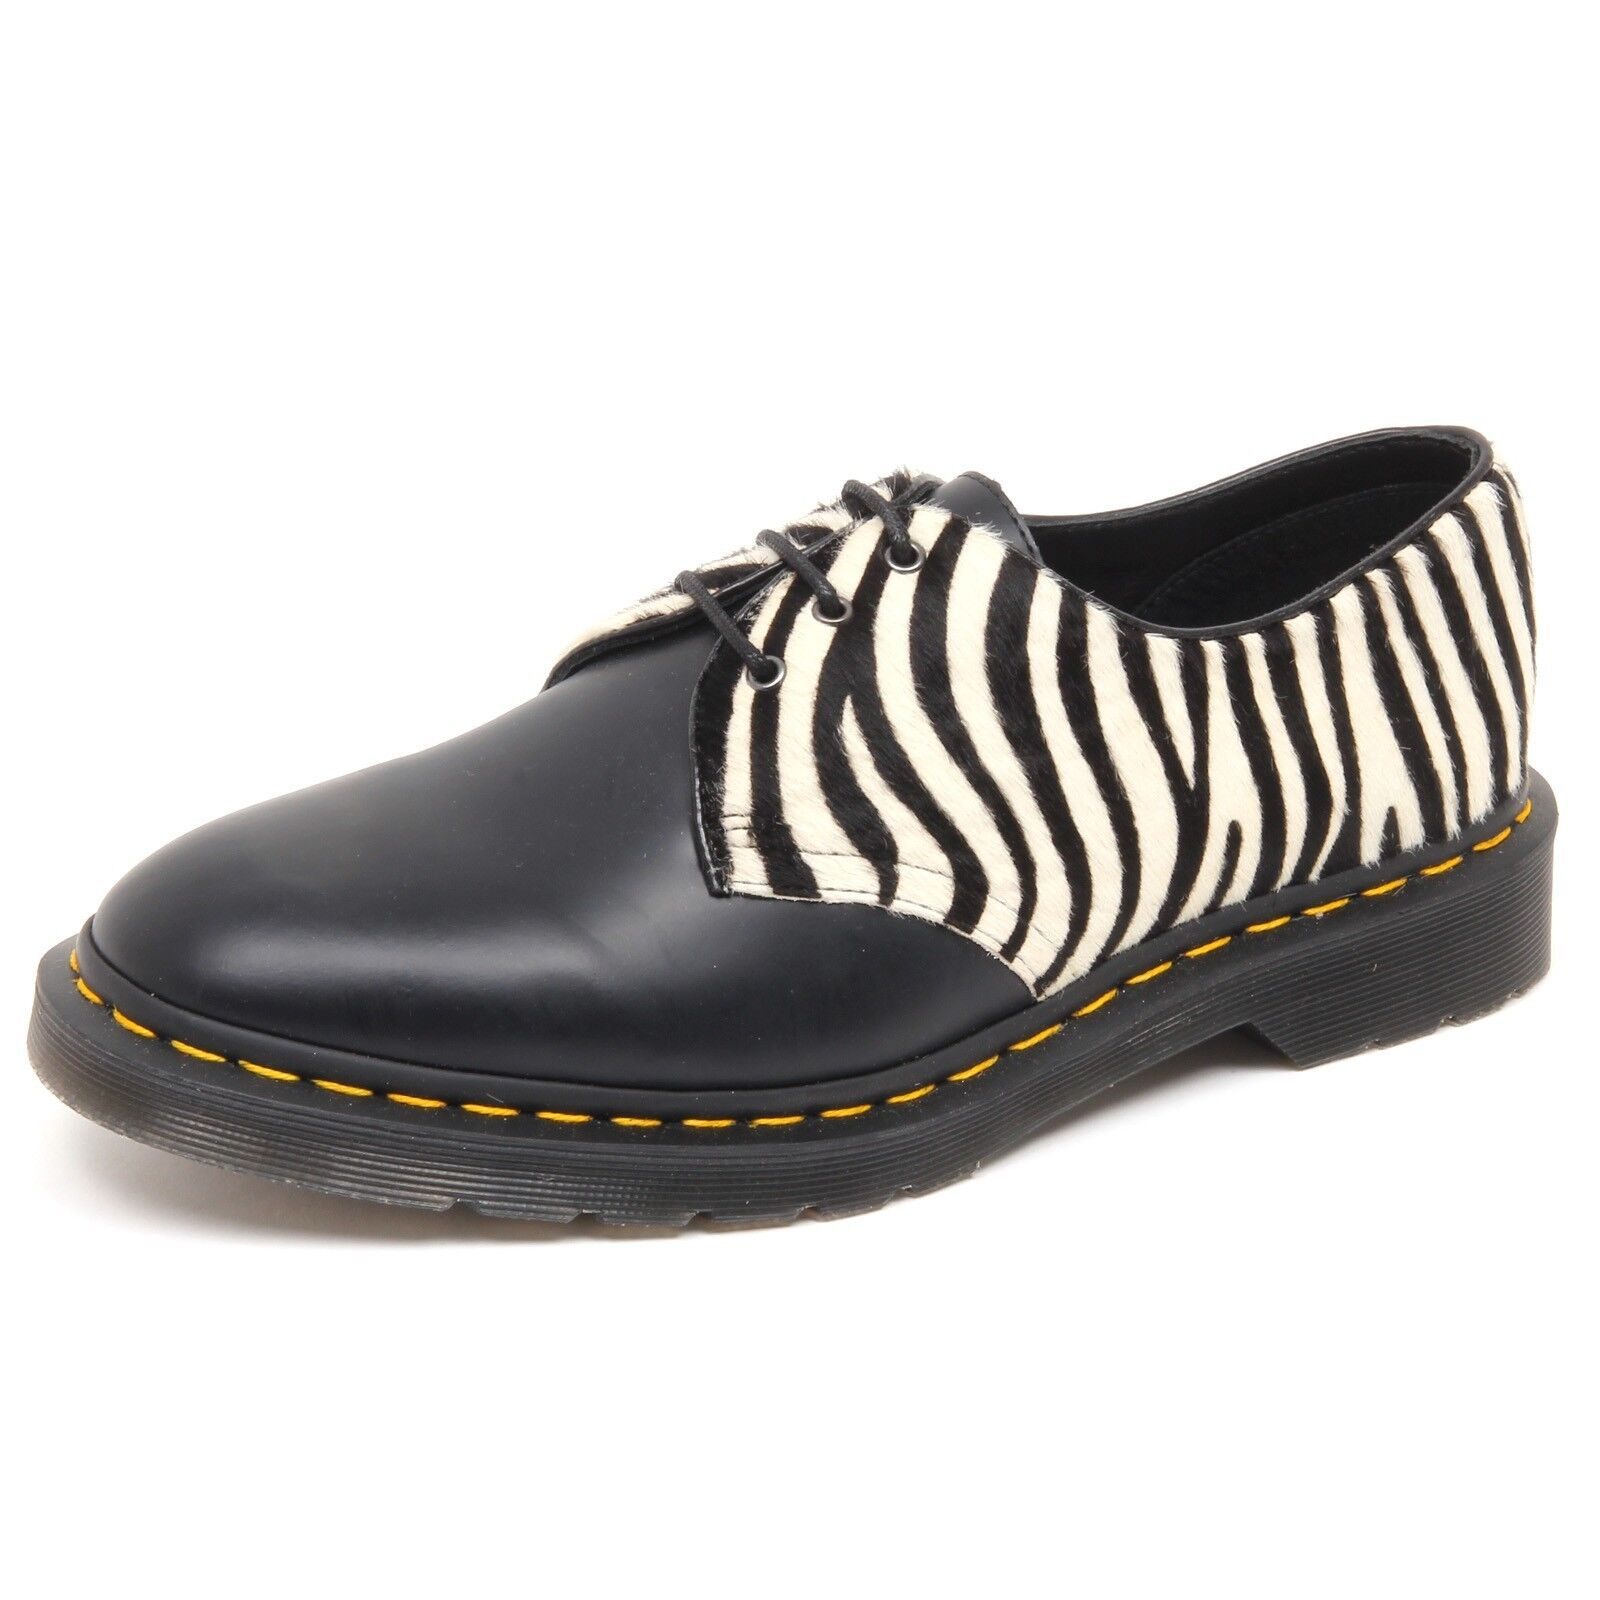 D8290 (SAMPLE NOT FOR SALE WITHOUT BOX) scarpa uomo DR. MARTENS shoe man